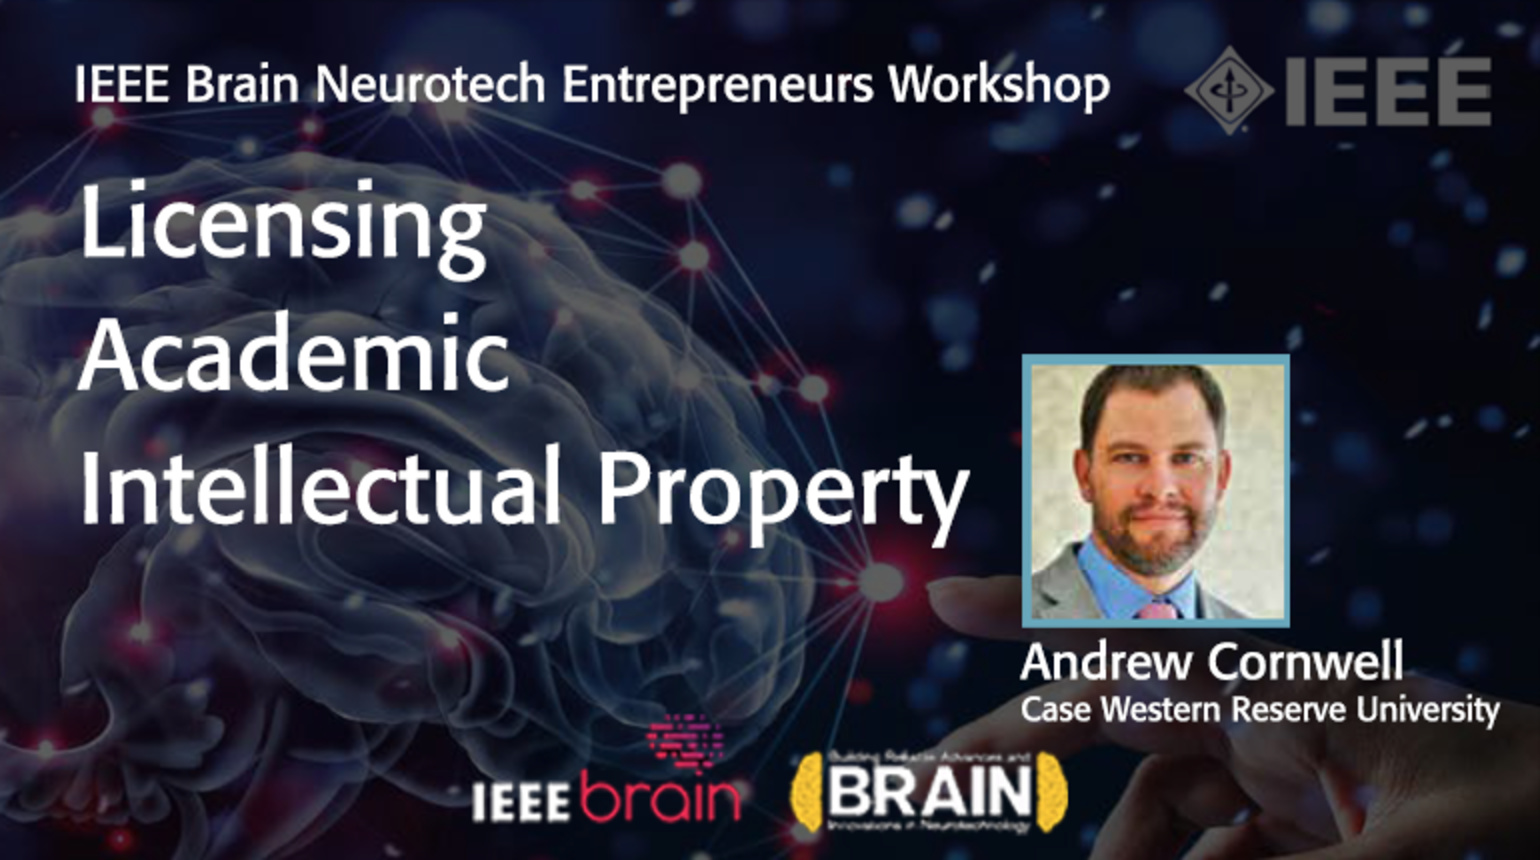 IEEE Brain: Licensing Academic Intellectual Property